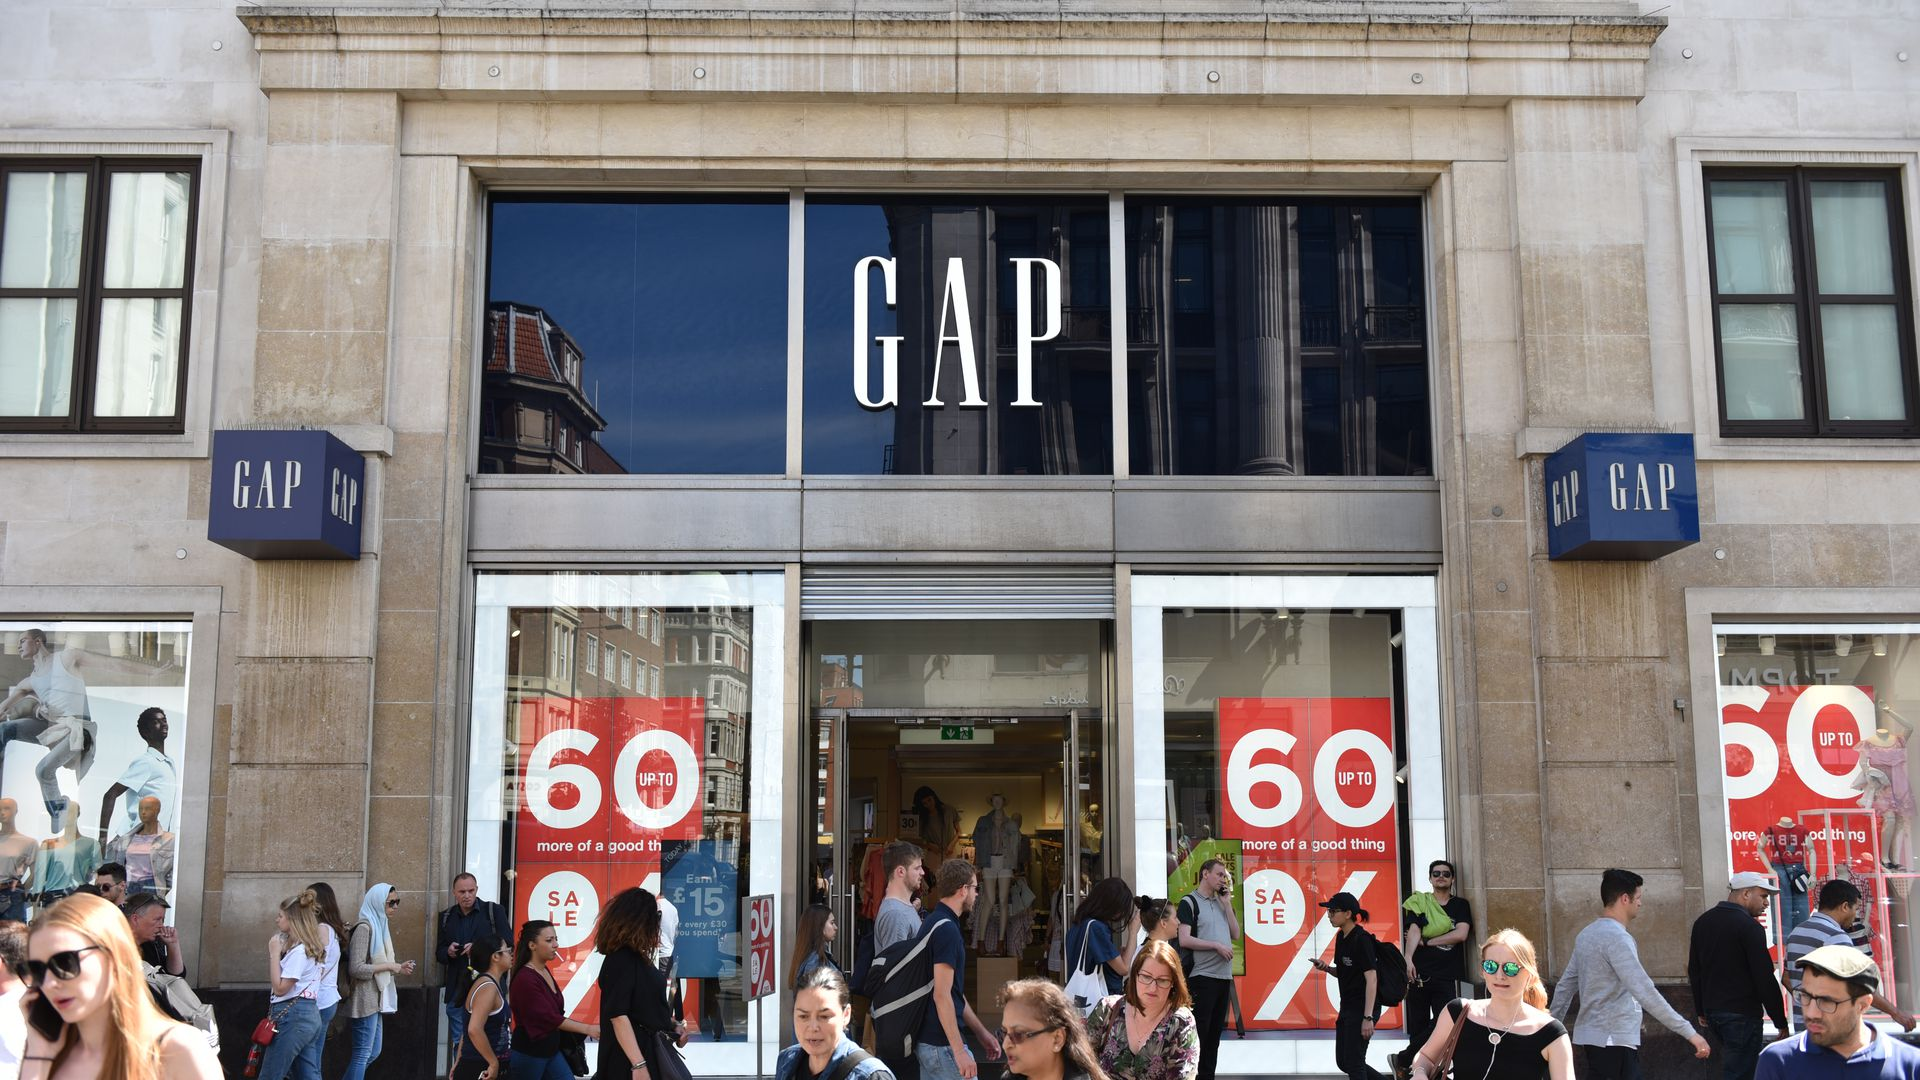 Storefront of Gap in London